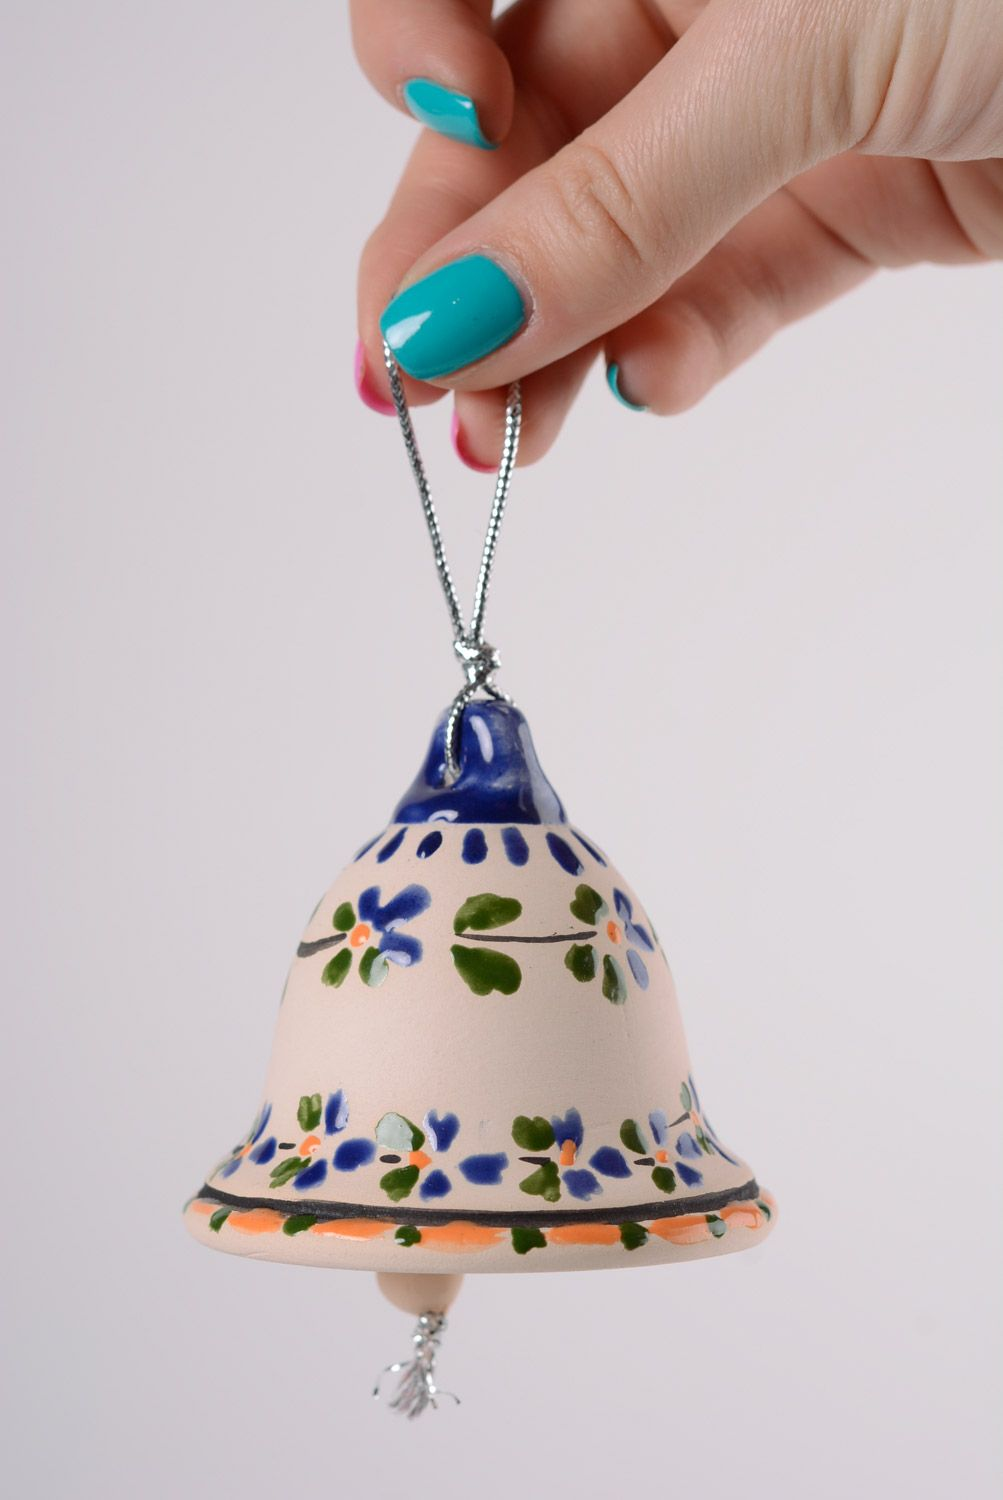 Handmade ceramic bell with painting majolica style with a loop interior decor ideas photo 2